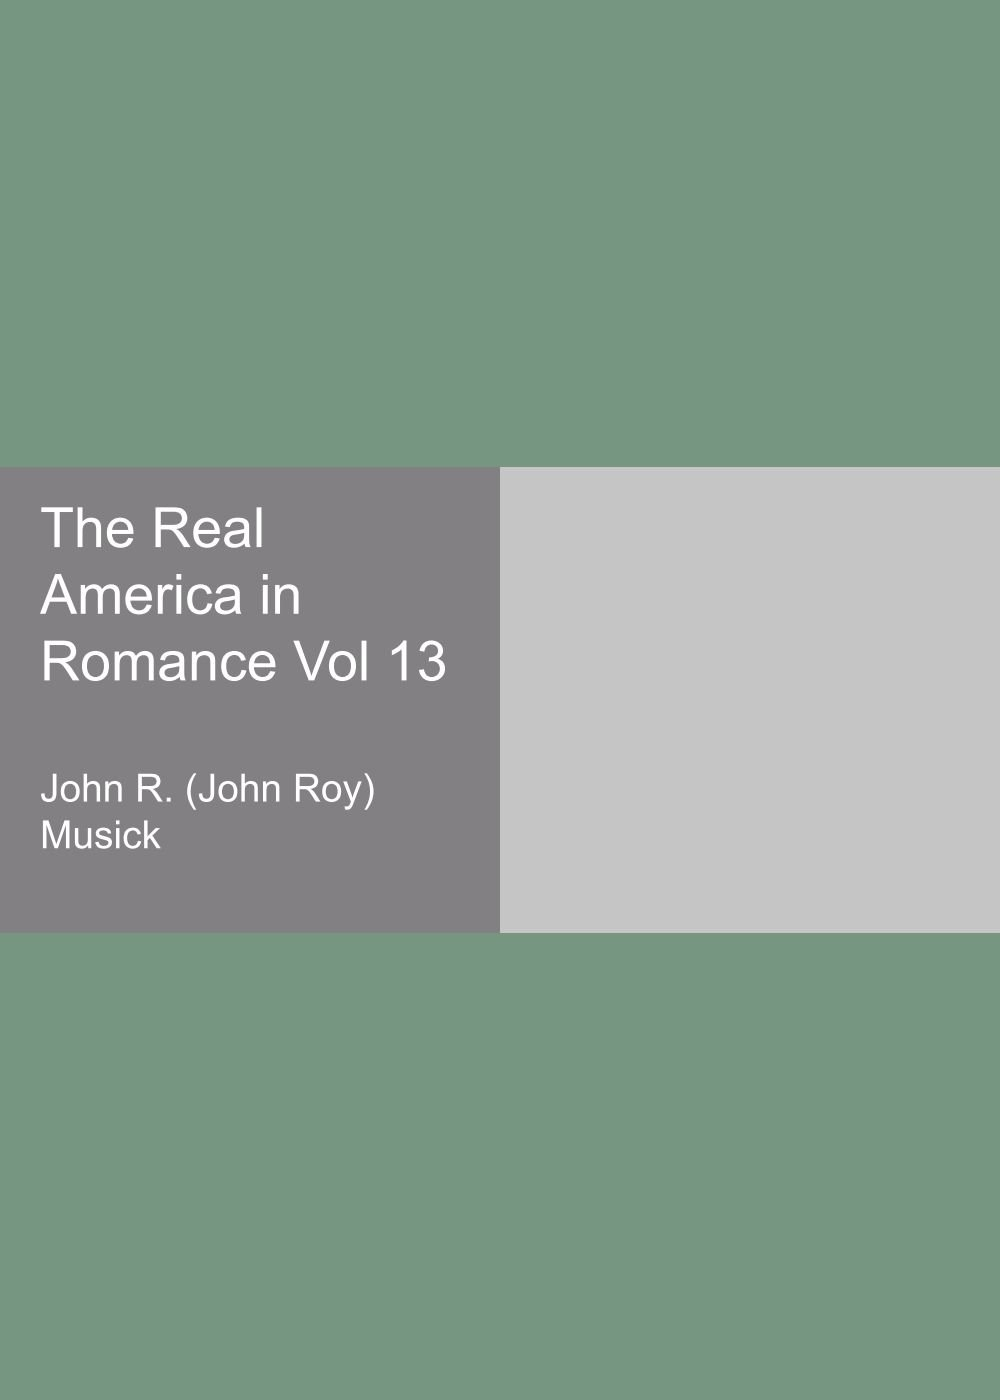 The Real America in Romance Vol 13 ebook